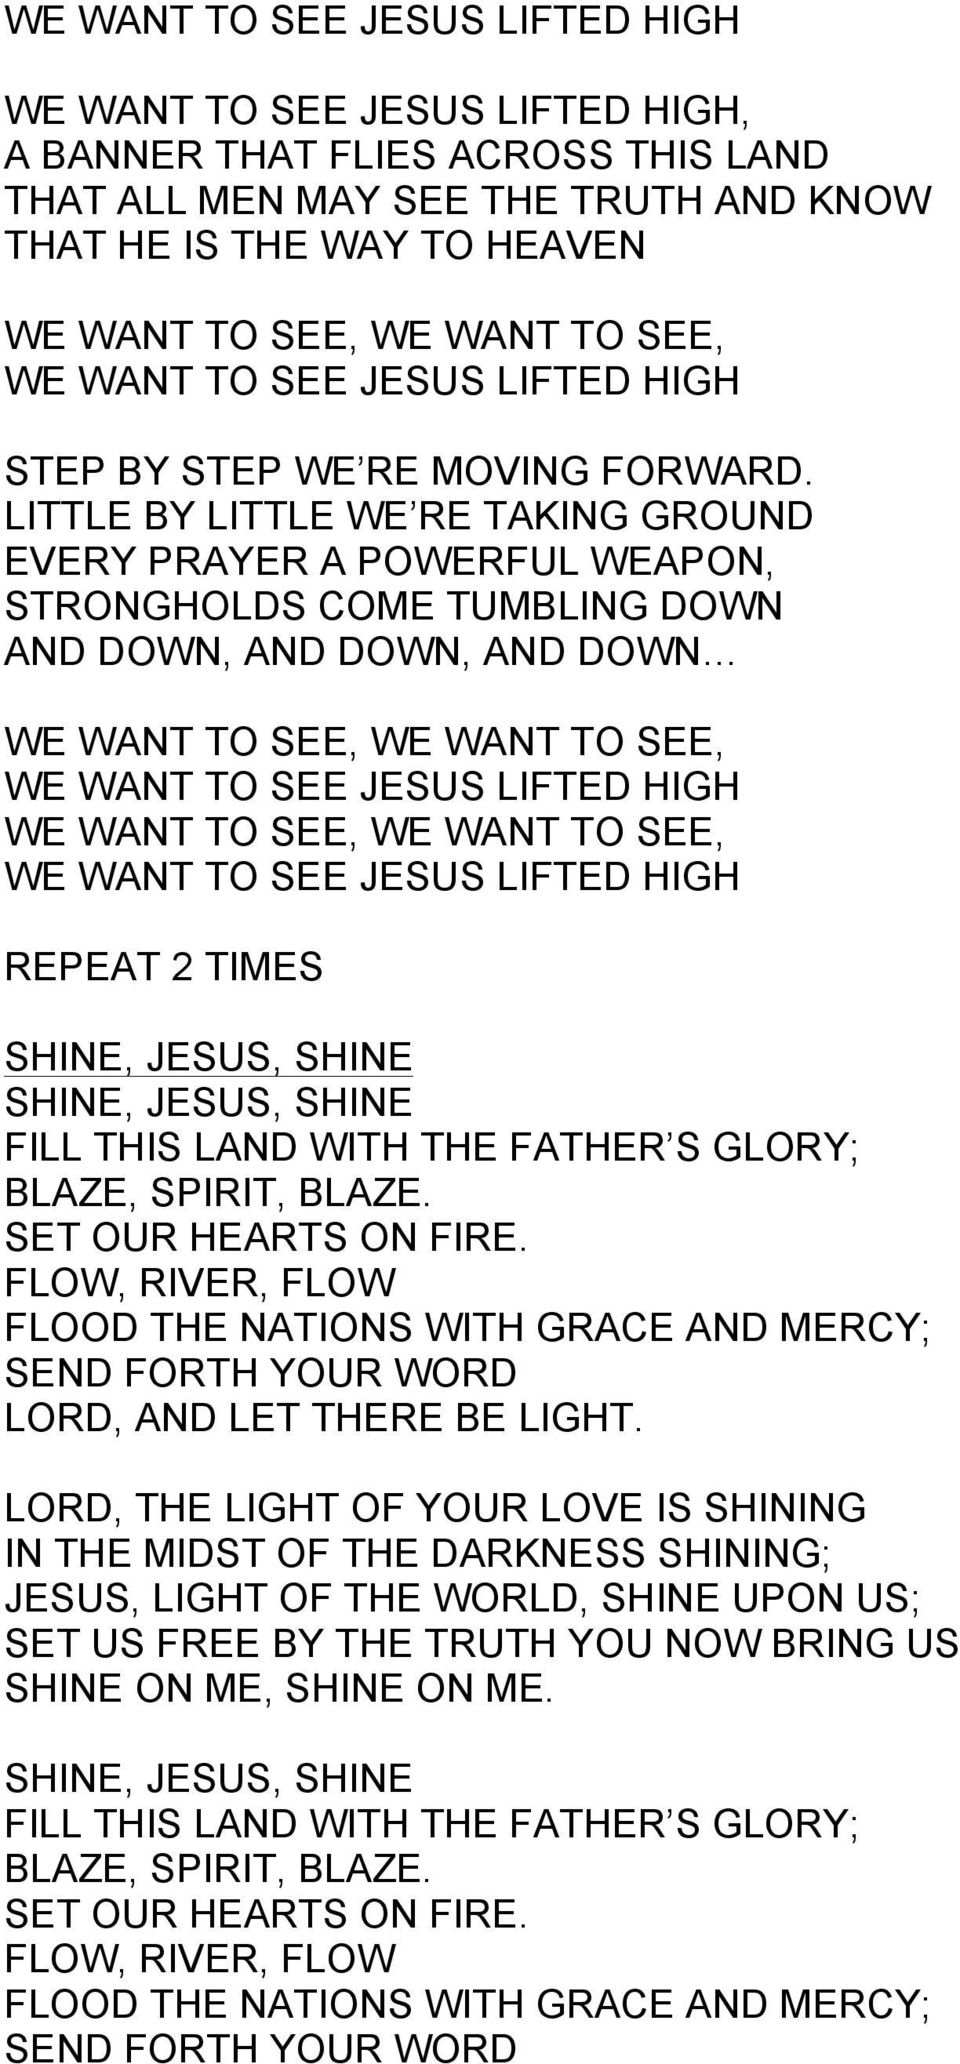 LITTLE BY LITTLE WE RE TAKING GROUND EVERY PRAYER A POWERFUL WEAPON, STRONGHOLDS COME TUMBLING DOWN AND DOWN, AND DOWN, AND DOWN WE WANT TO SEE, WE WANT TO SEE, WE WANT TO SEE JESUS LIFTED HIGH WE